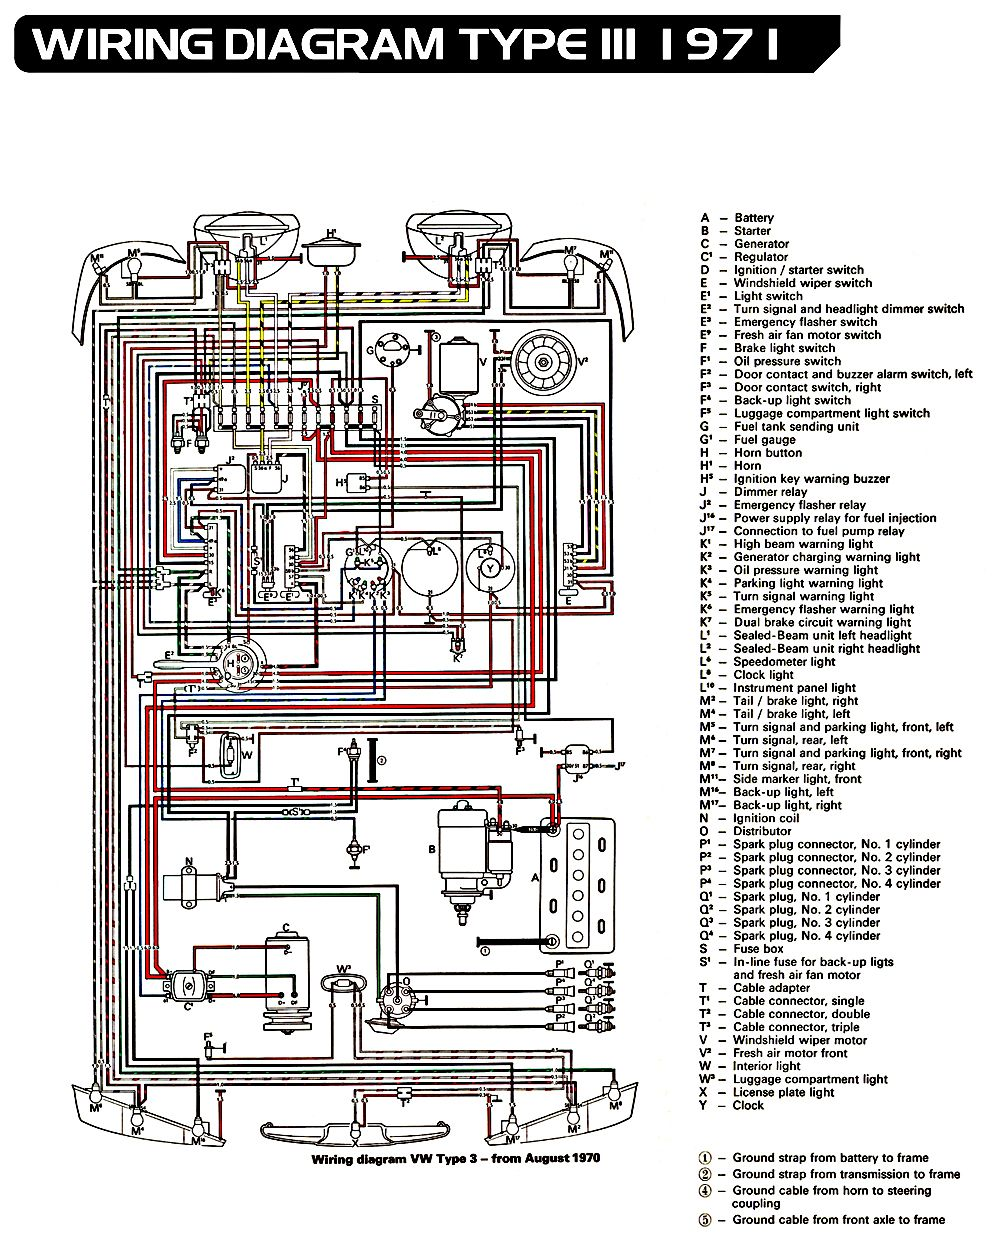 medium resolution of 1971 type 3 vw wiring diagram so simple compared to a modern ecu rh pinterest com